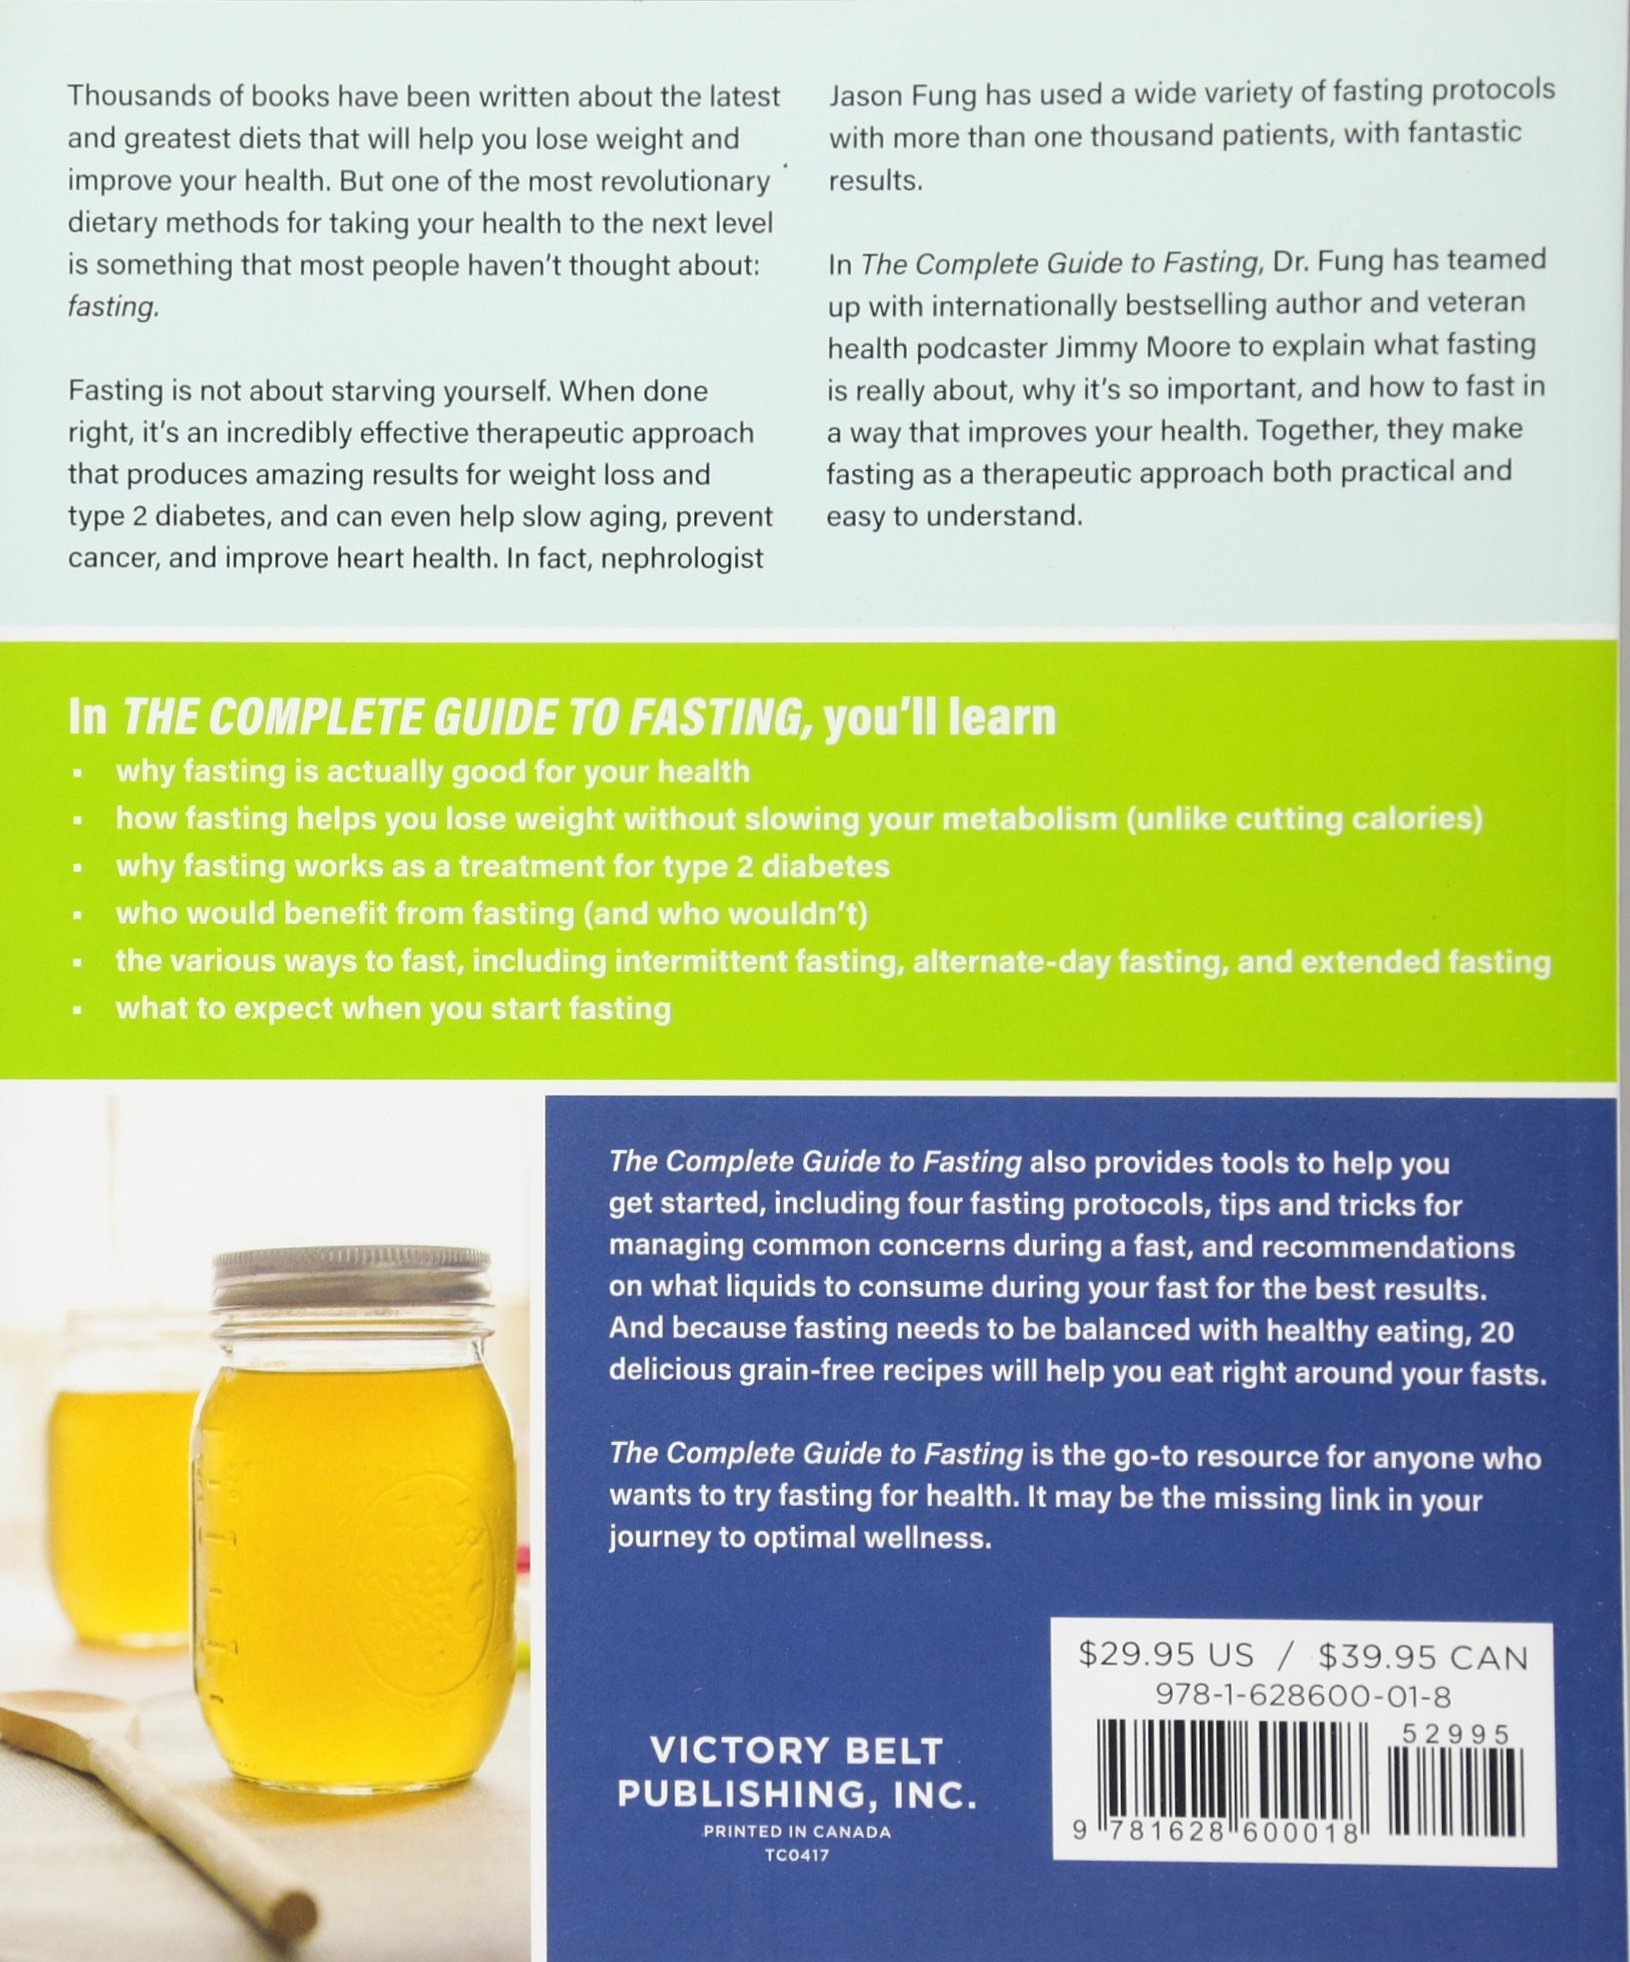 The Complete Guide to Fasting: Amazon.co.uk: Jason Fung, Jimmy Moore:  9781628600018: Books